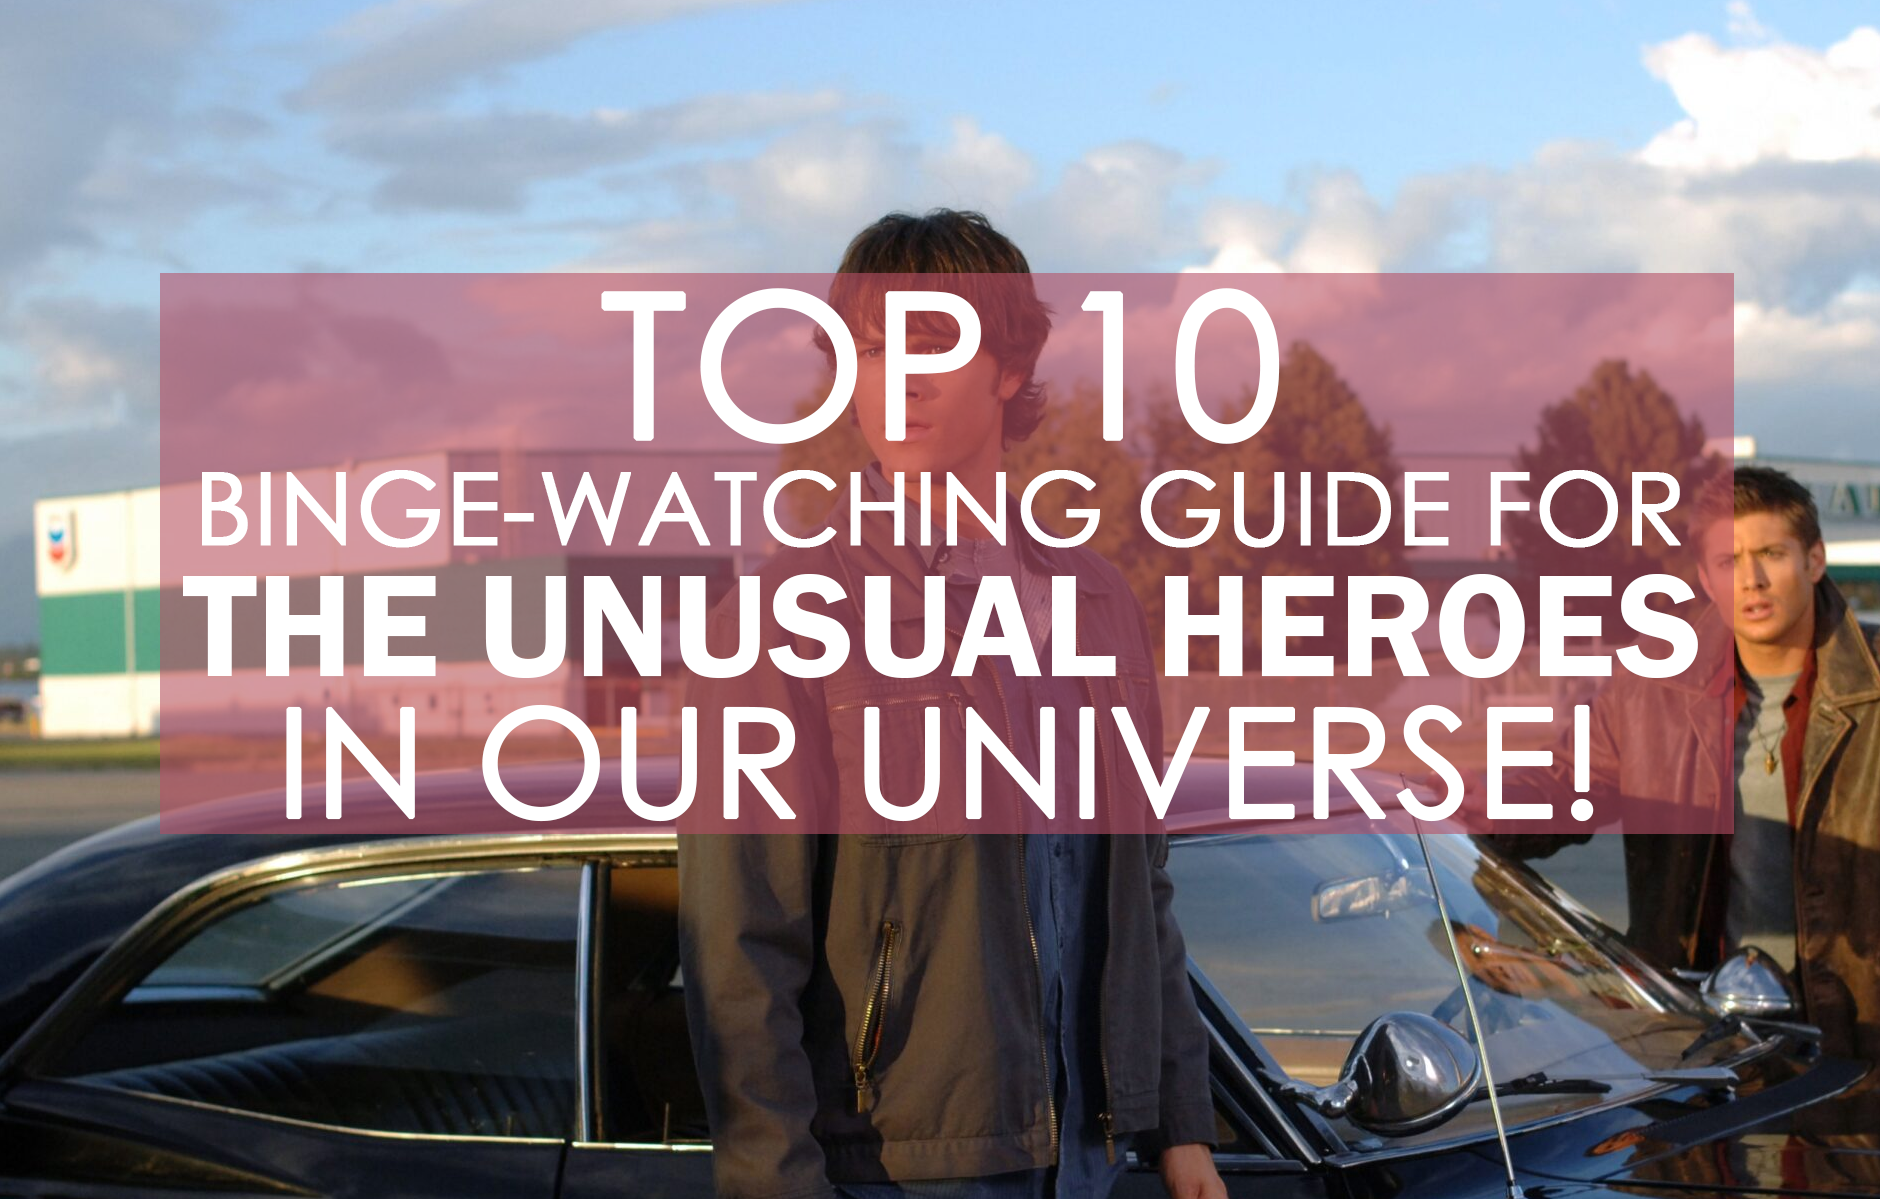 Top 10 Binge-Watching Guide For The Unusual Heroes In Our Universe!